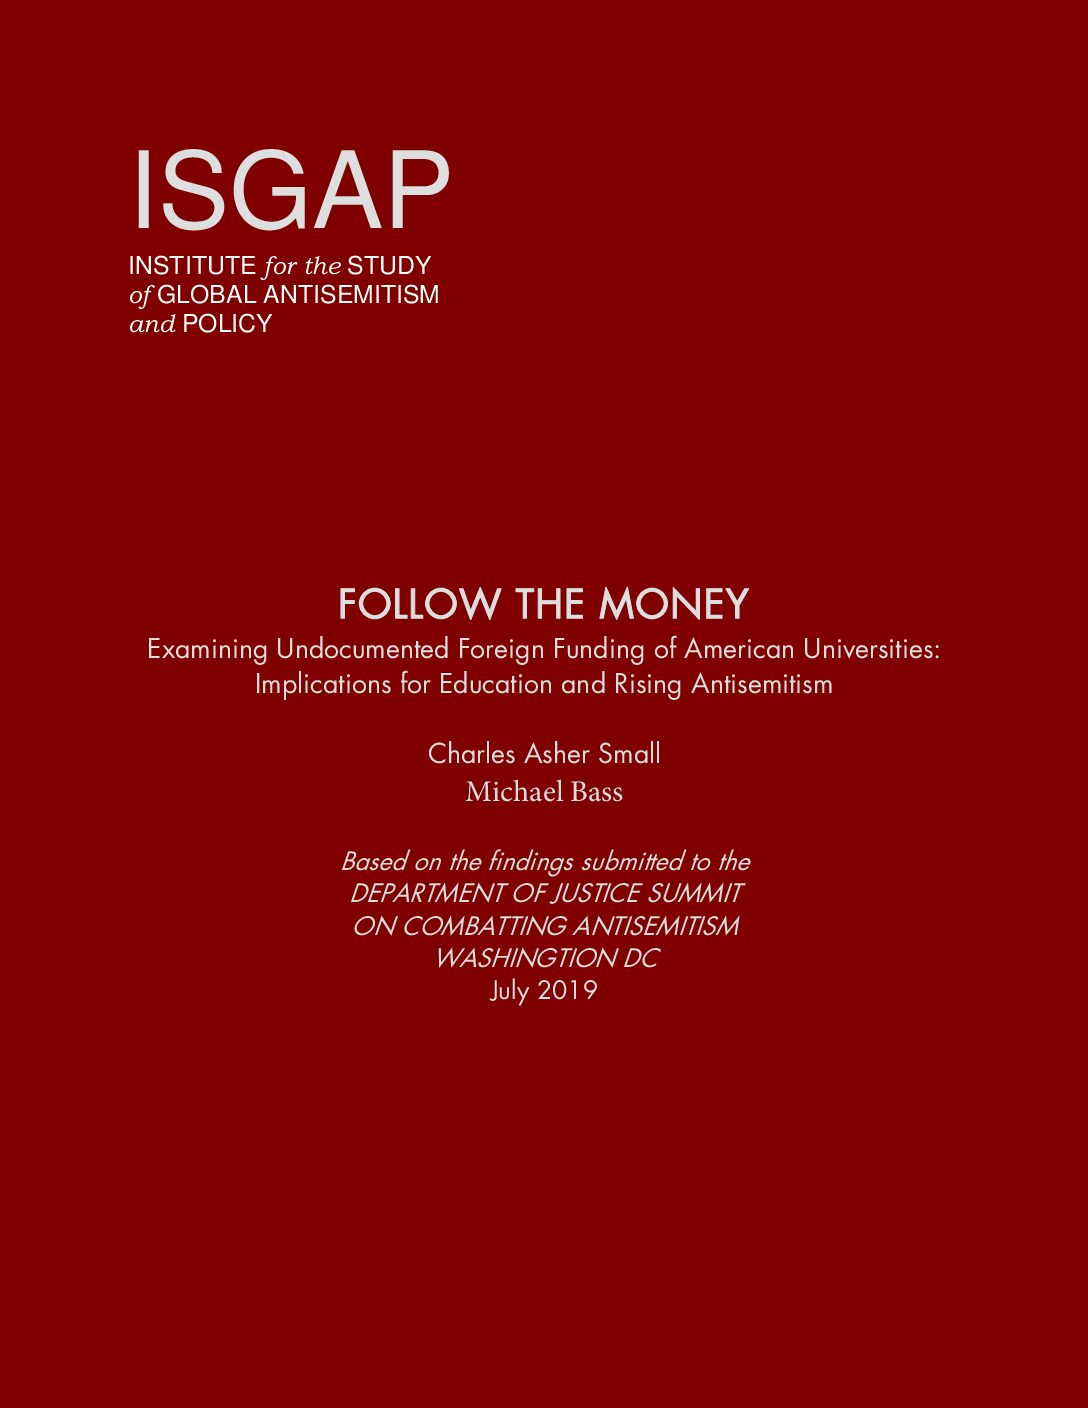 Follow The Money: Examining Undocumented Foreign Funding of American Universities, Implications for Education and Rising Antisemitism by Charles Asher Small and Michael Bass